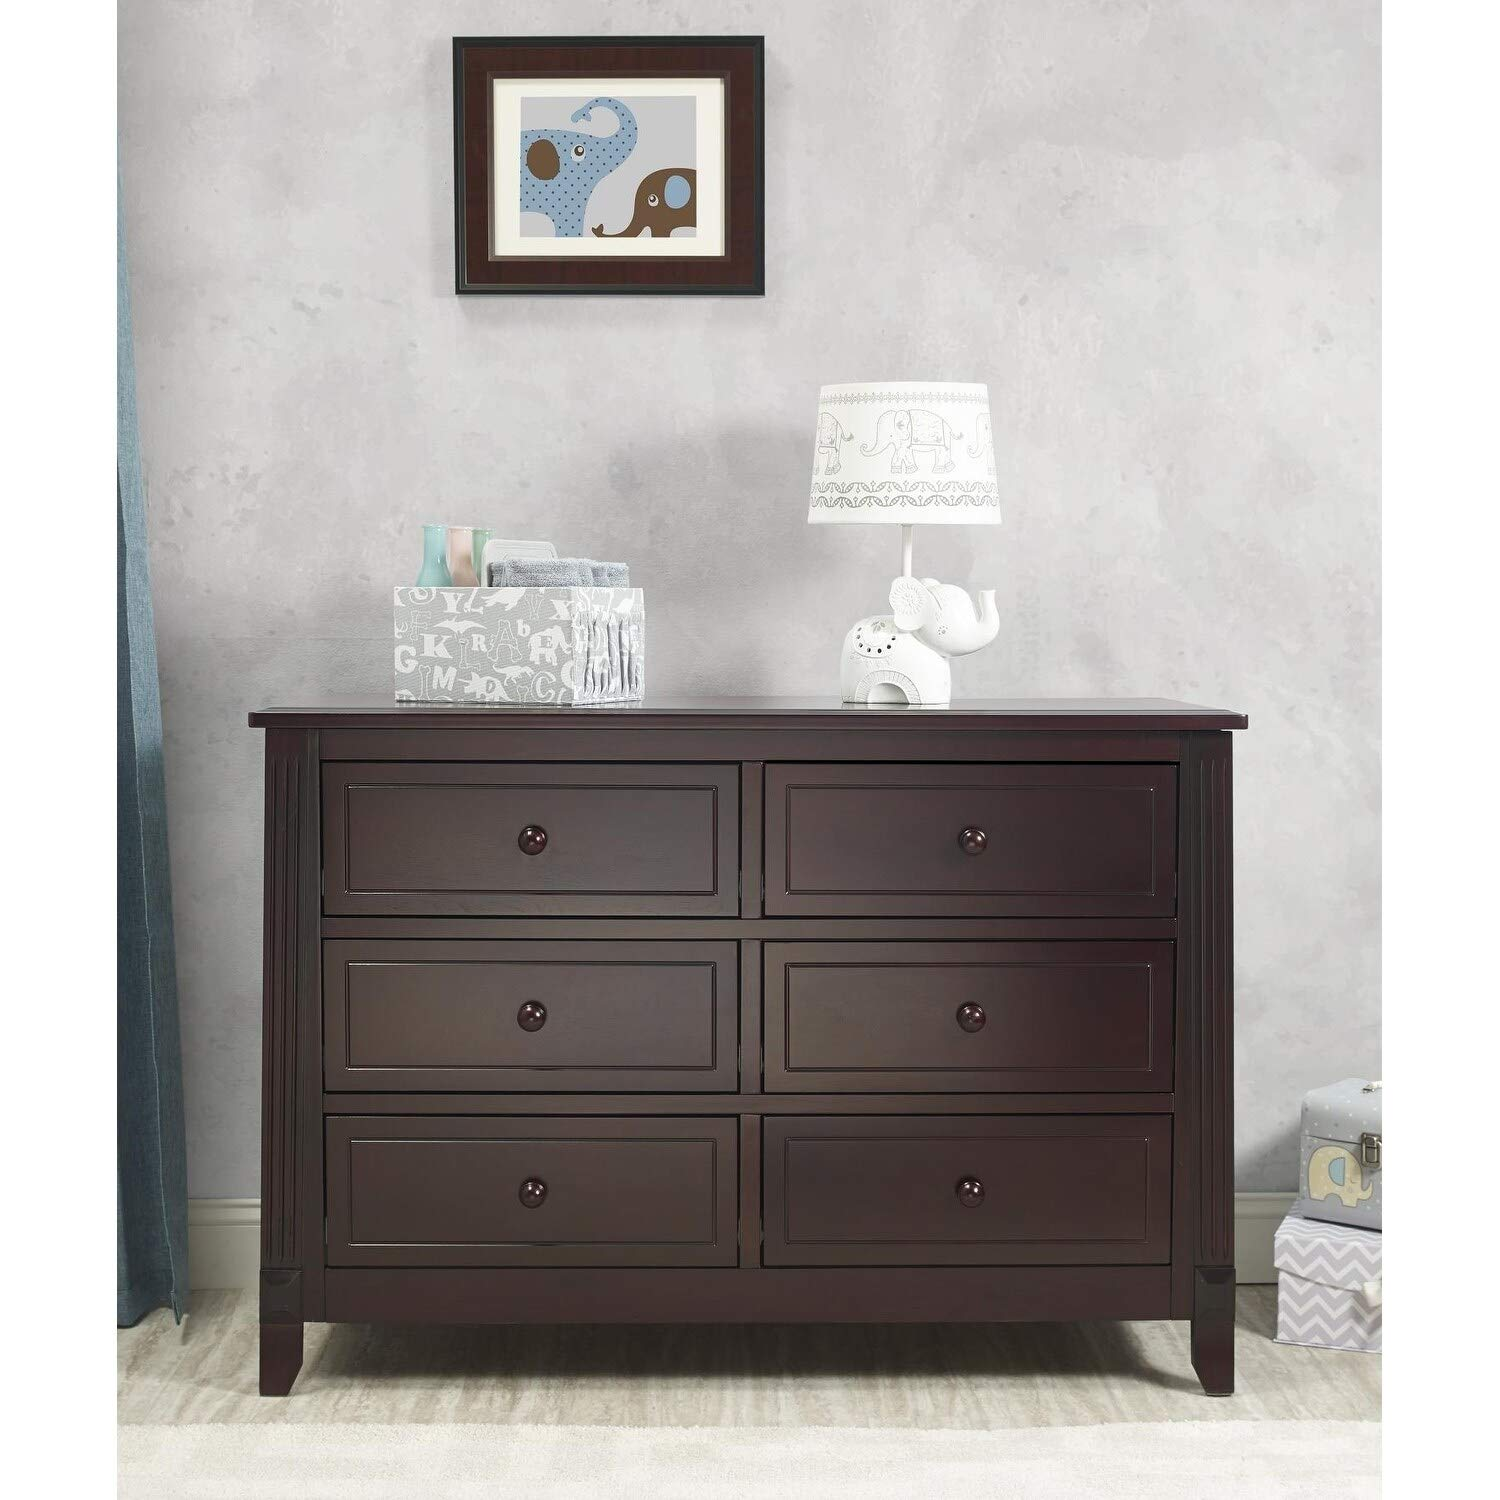 Amazon.com: sorelle Berkley doble dresser-gray, gris: Baby